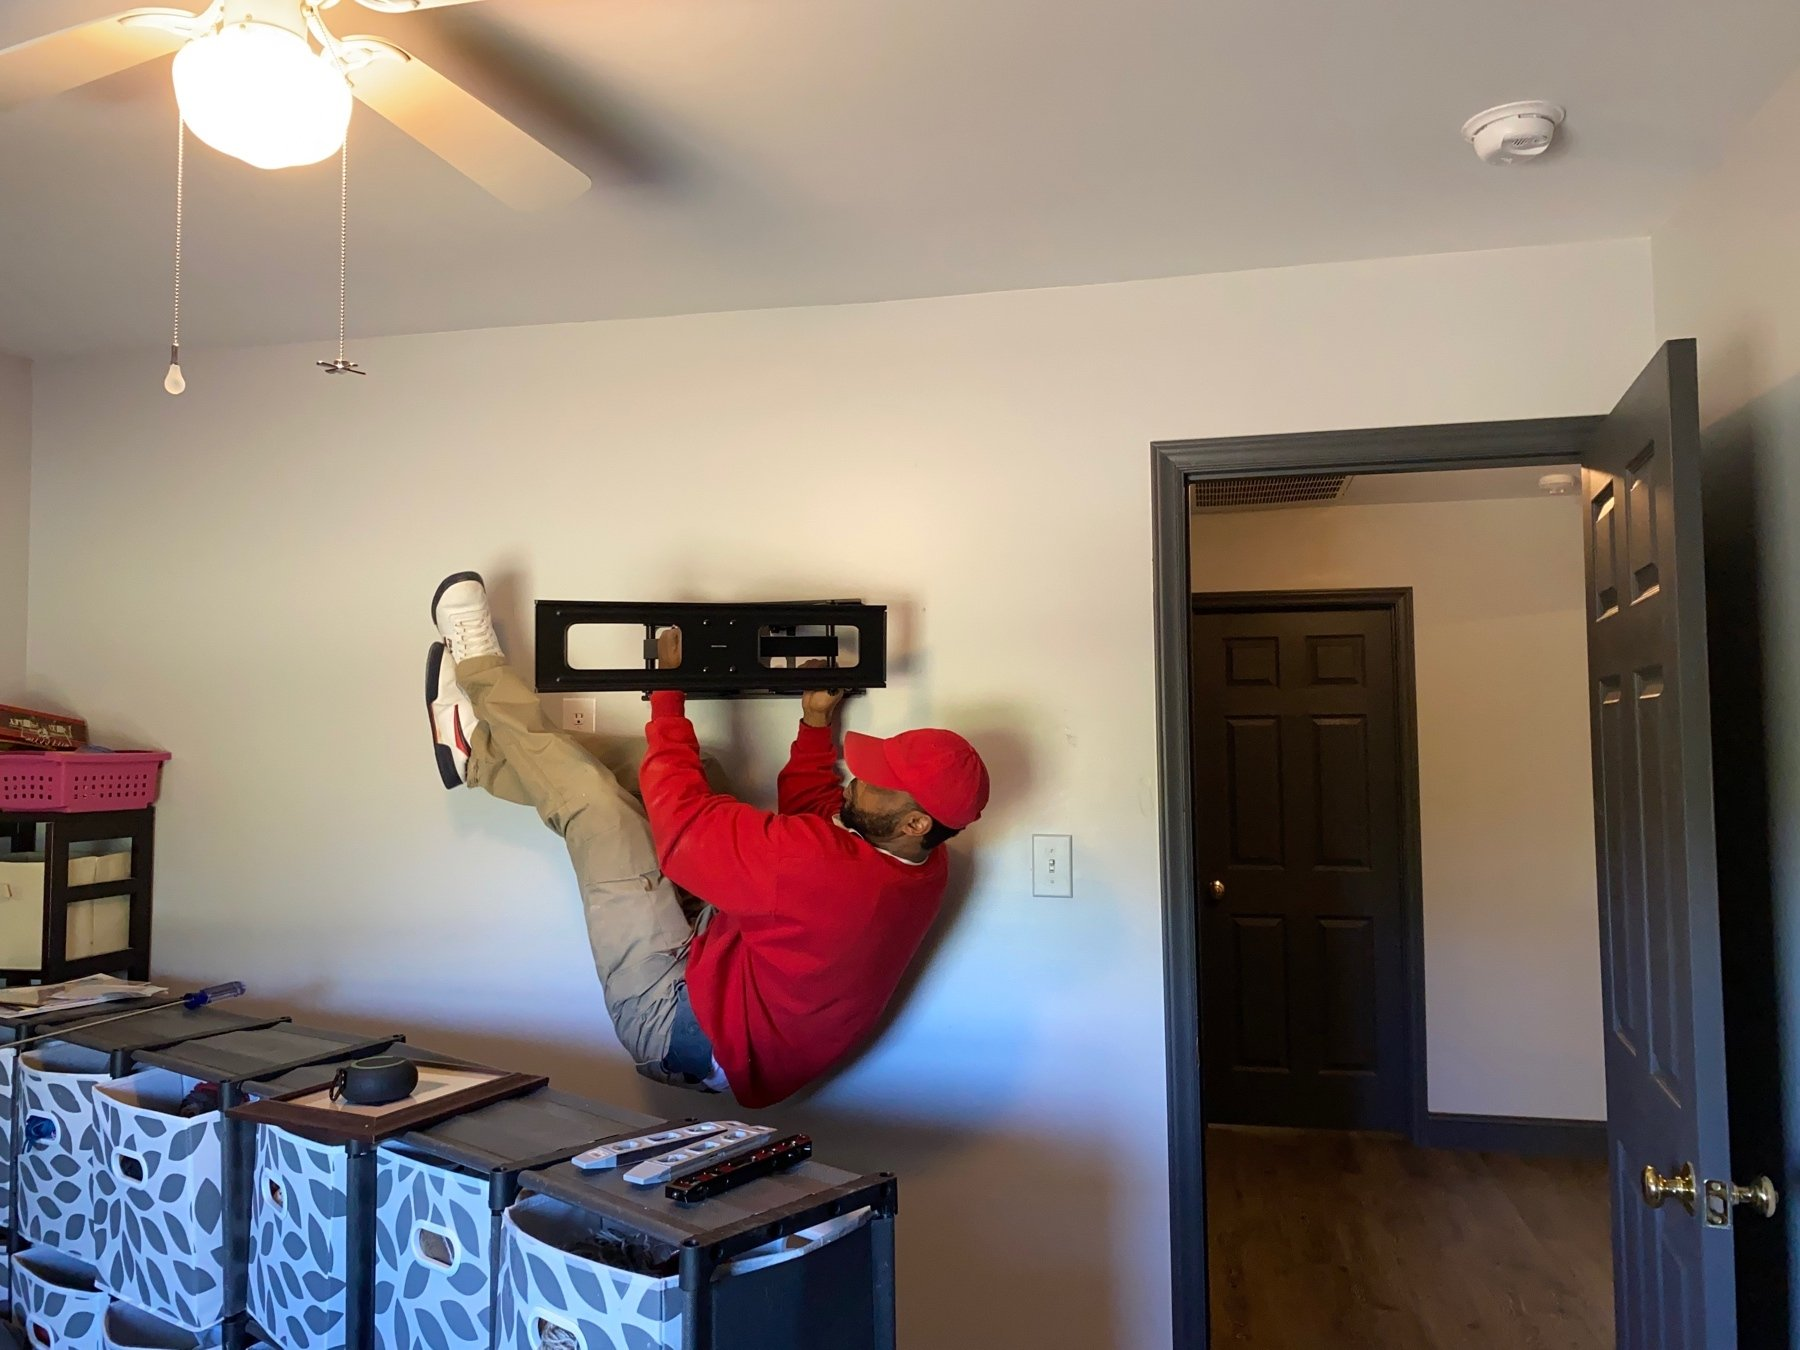 TV Mount Charlotte Installer Hanging From Wall Mount